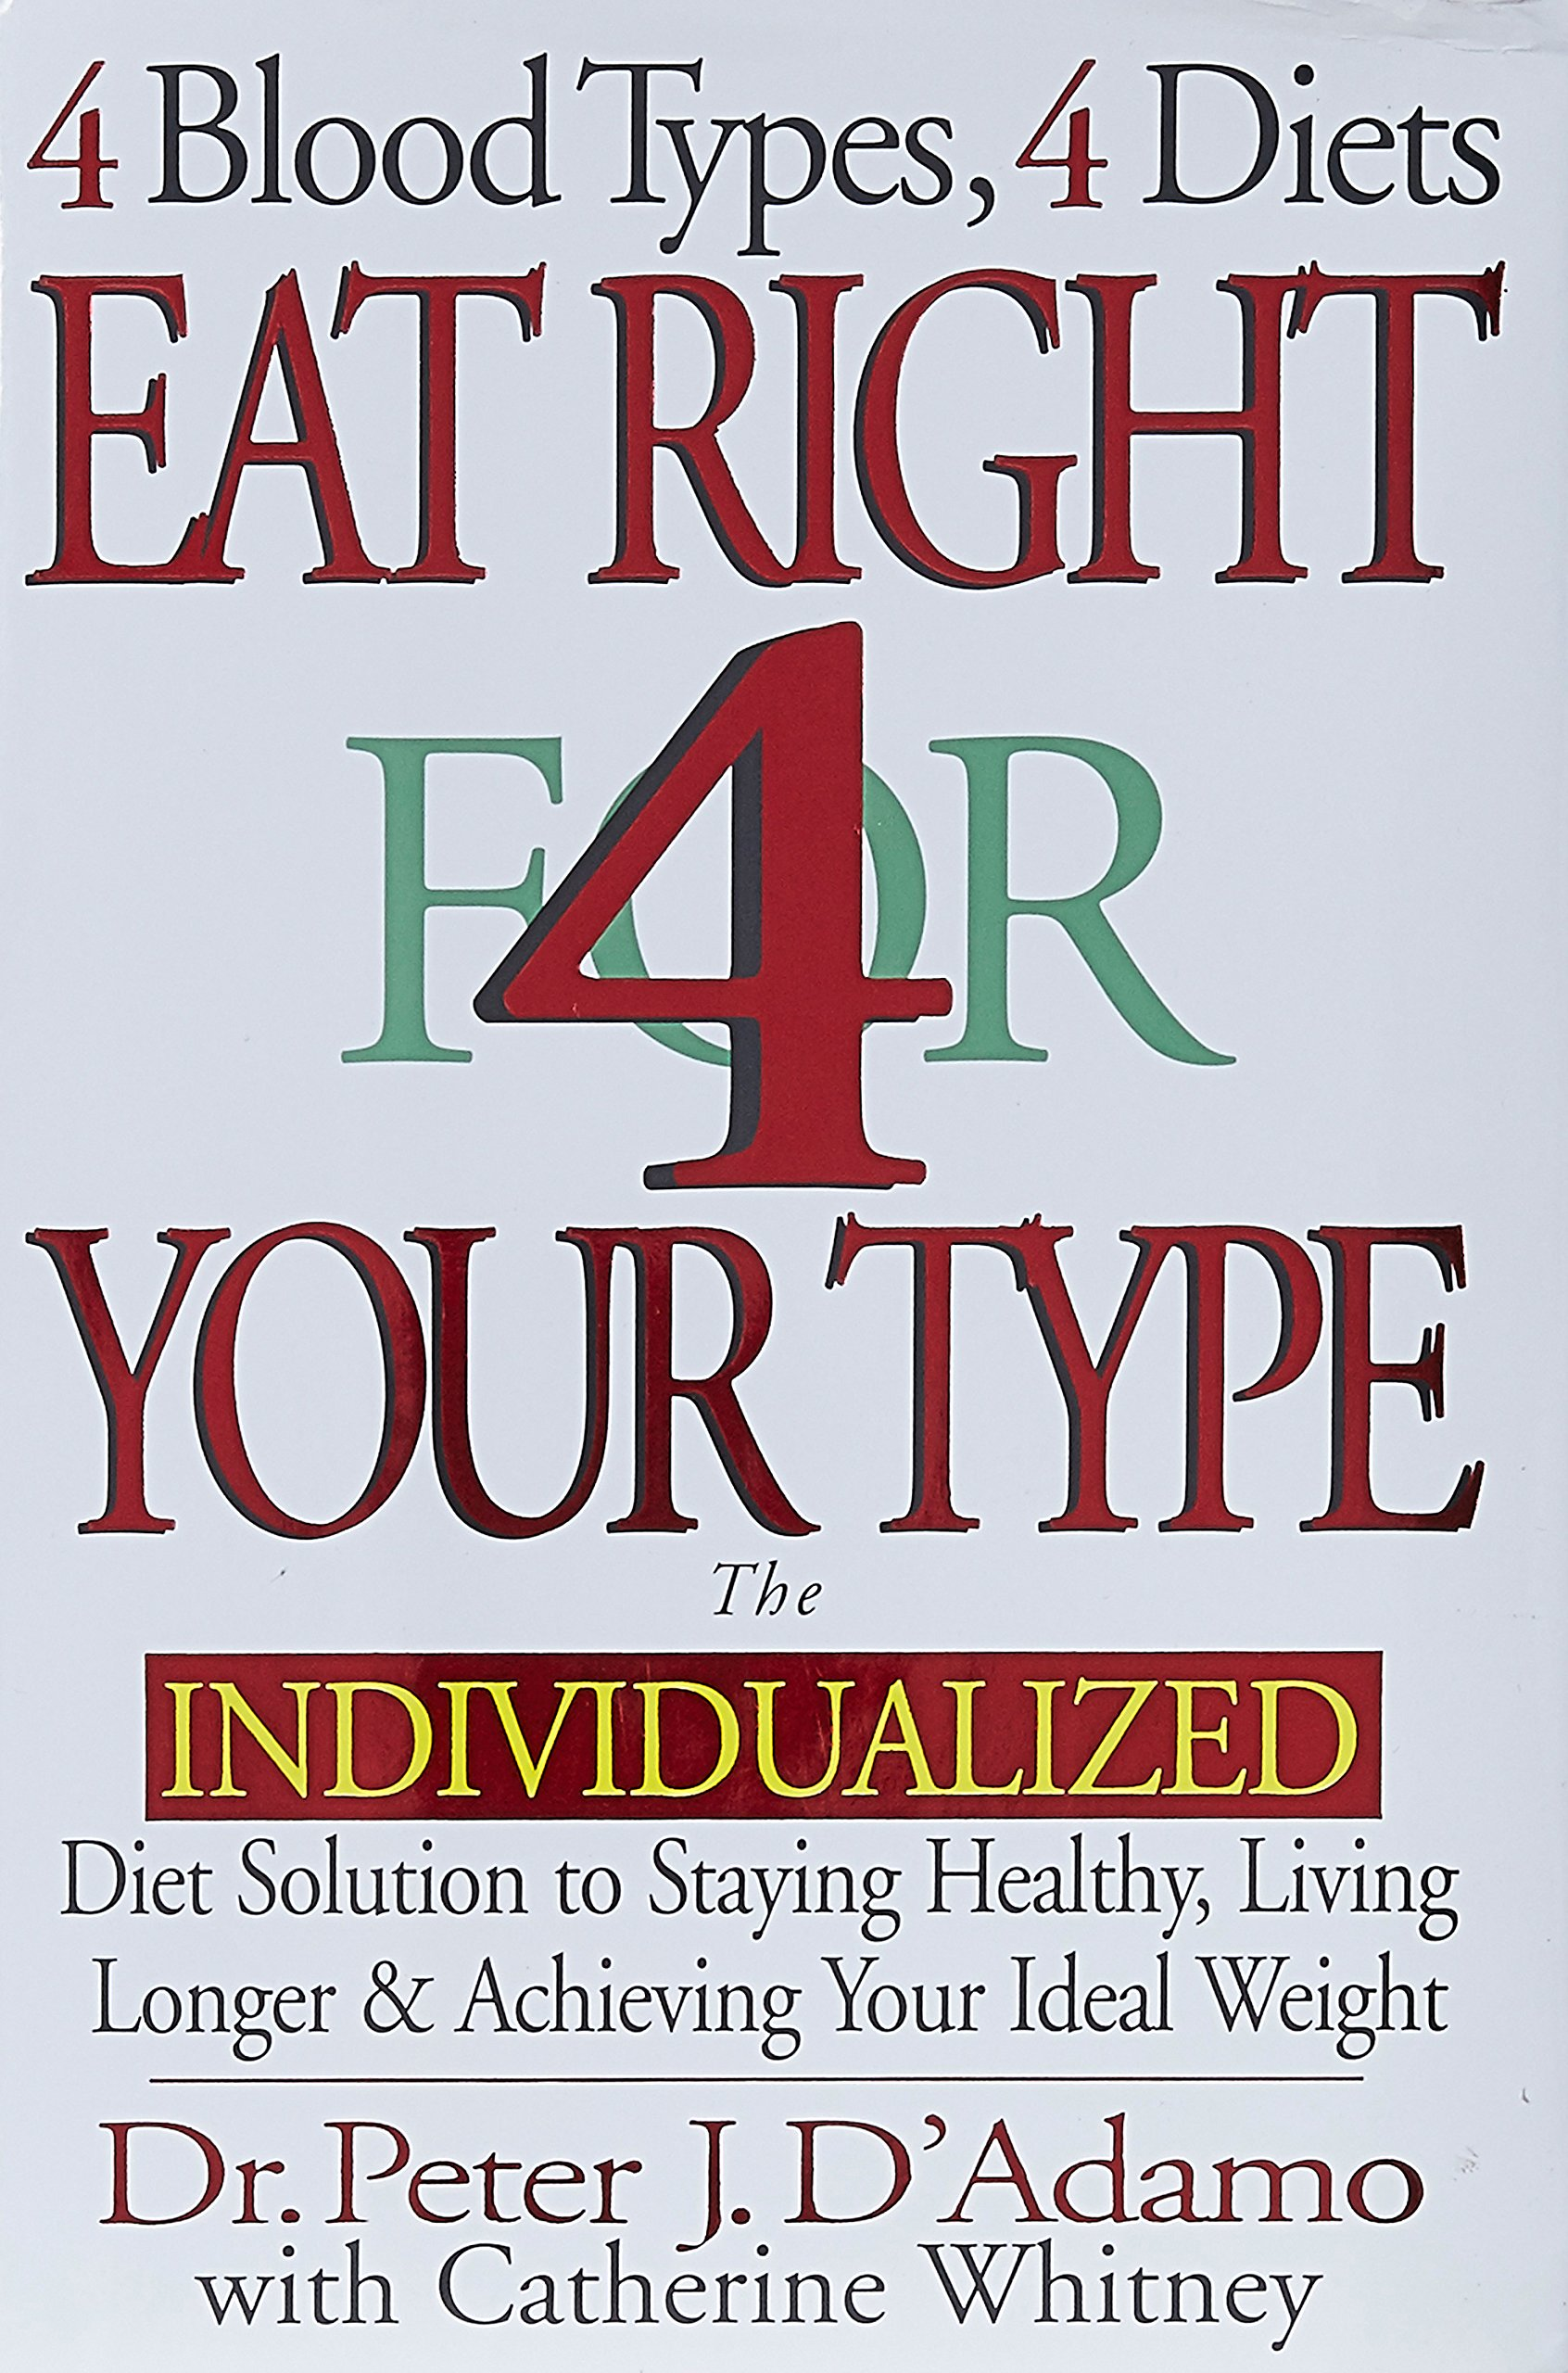 Eat right 4 your type the individualized diet solution the eat right 4 your type the individualized diet solution the individualized diet solution to staying slim amazon dr peter j dadamo fandeluxe Images